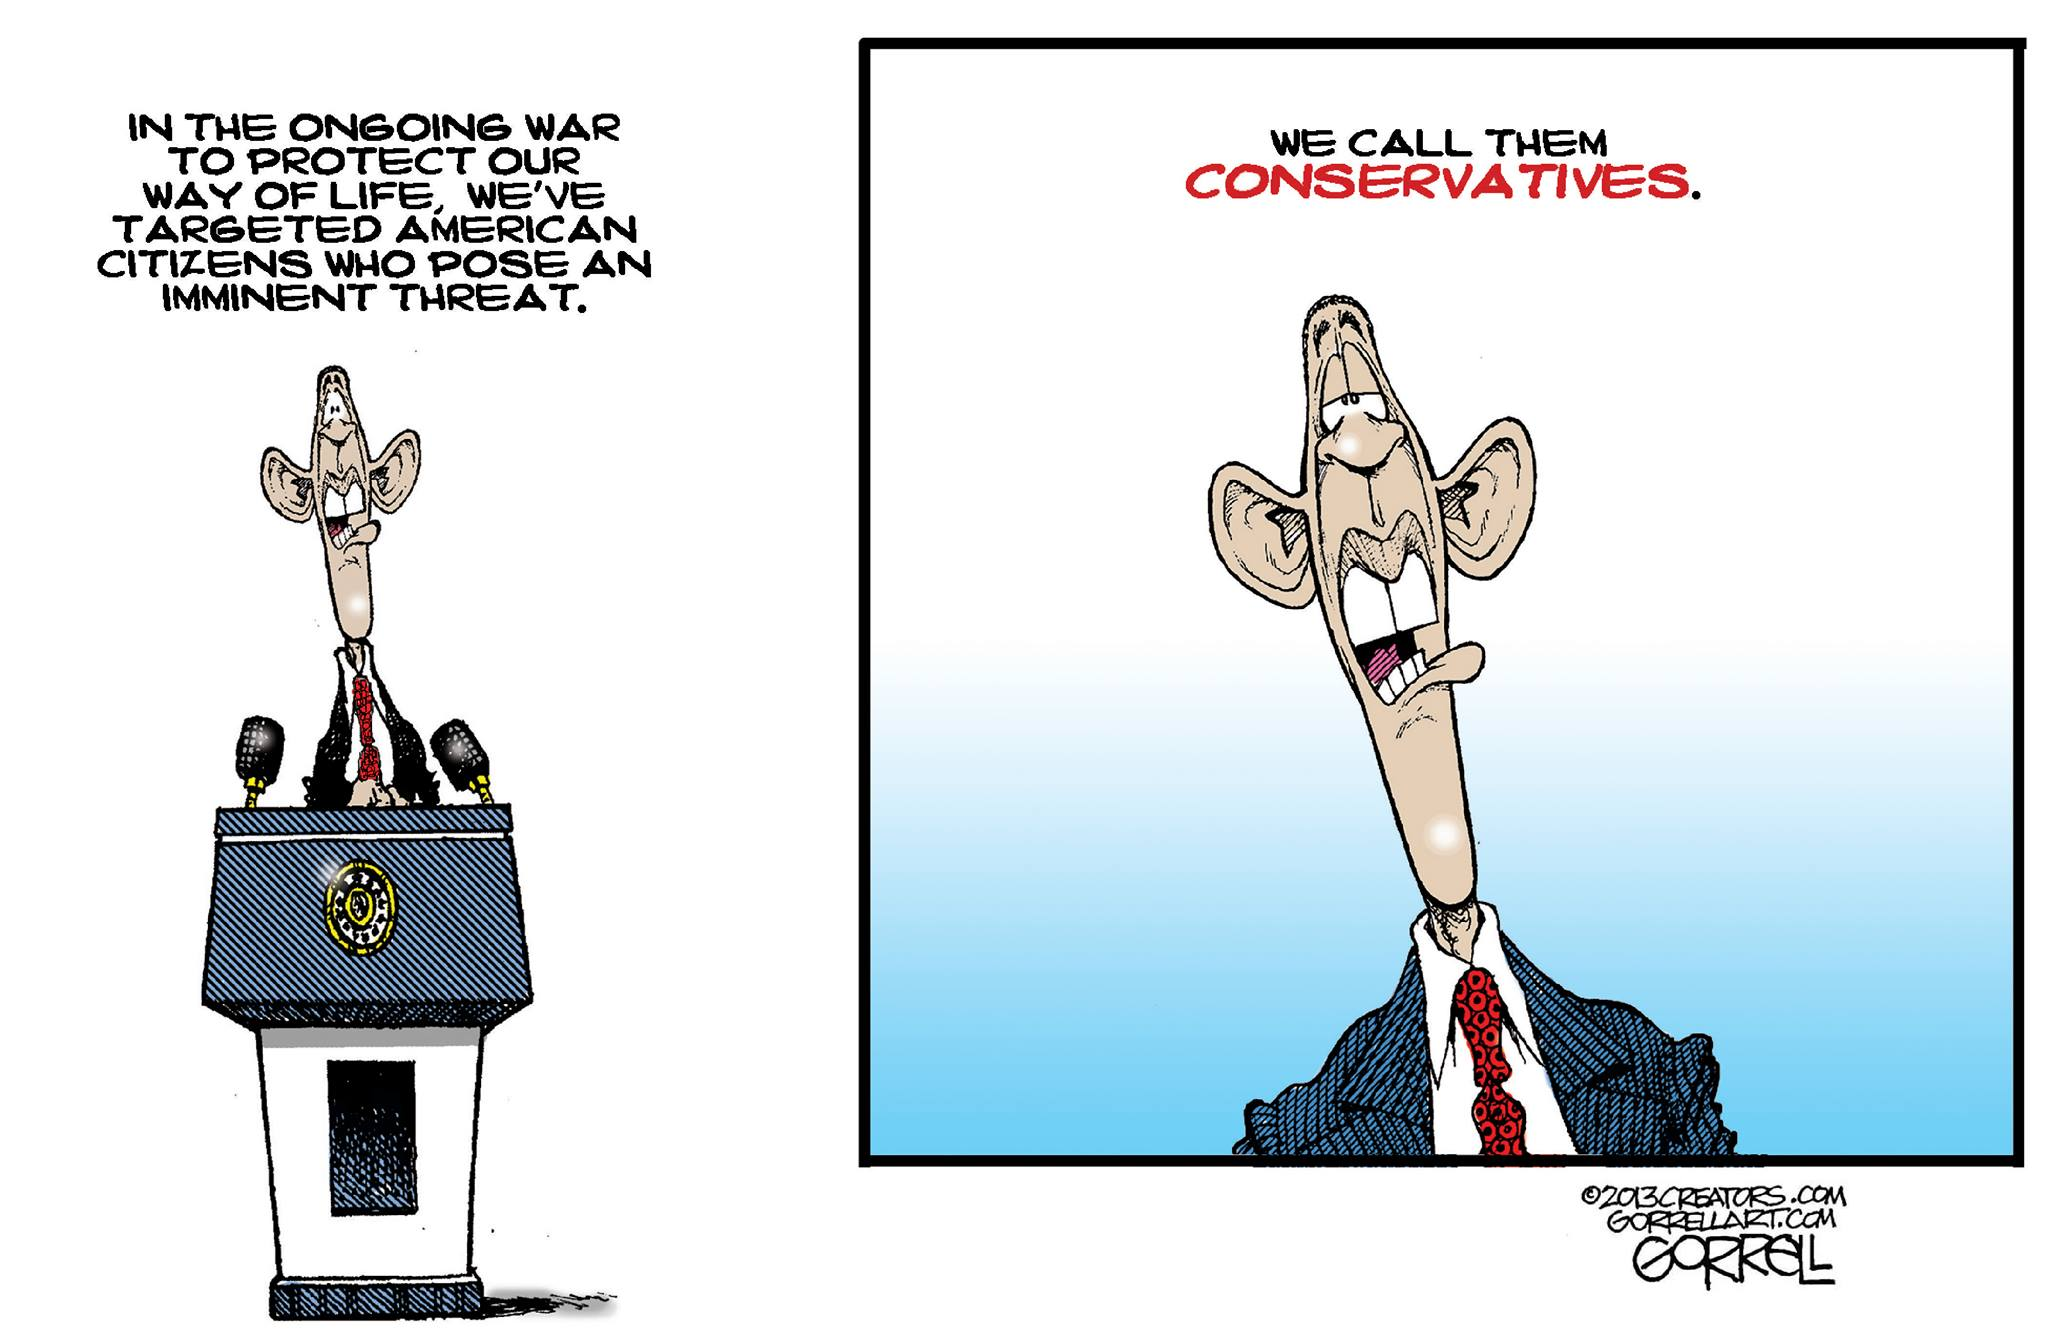 IRS Scandal Obama Targeting Conservatives